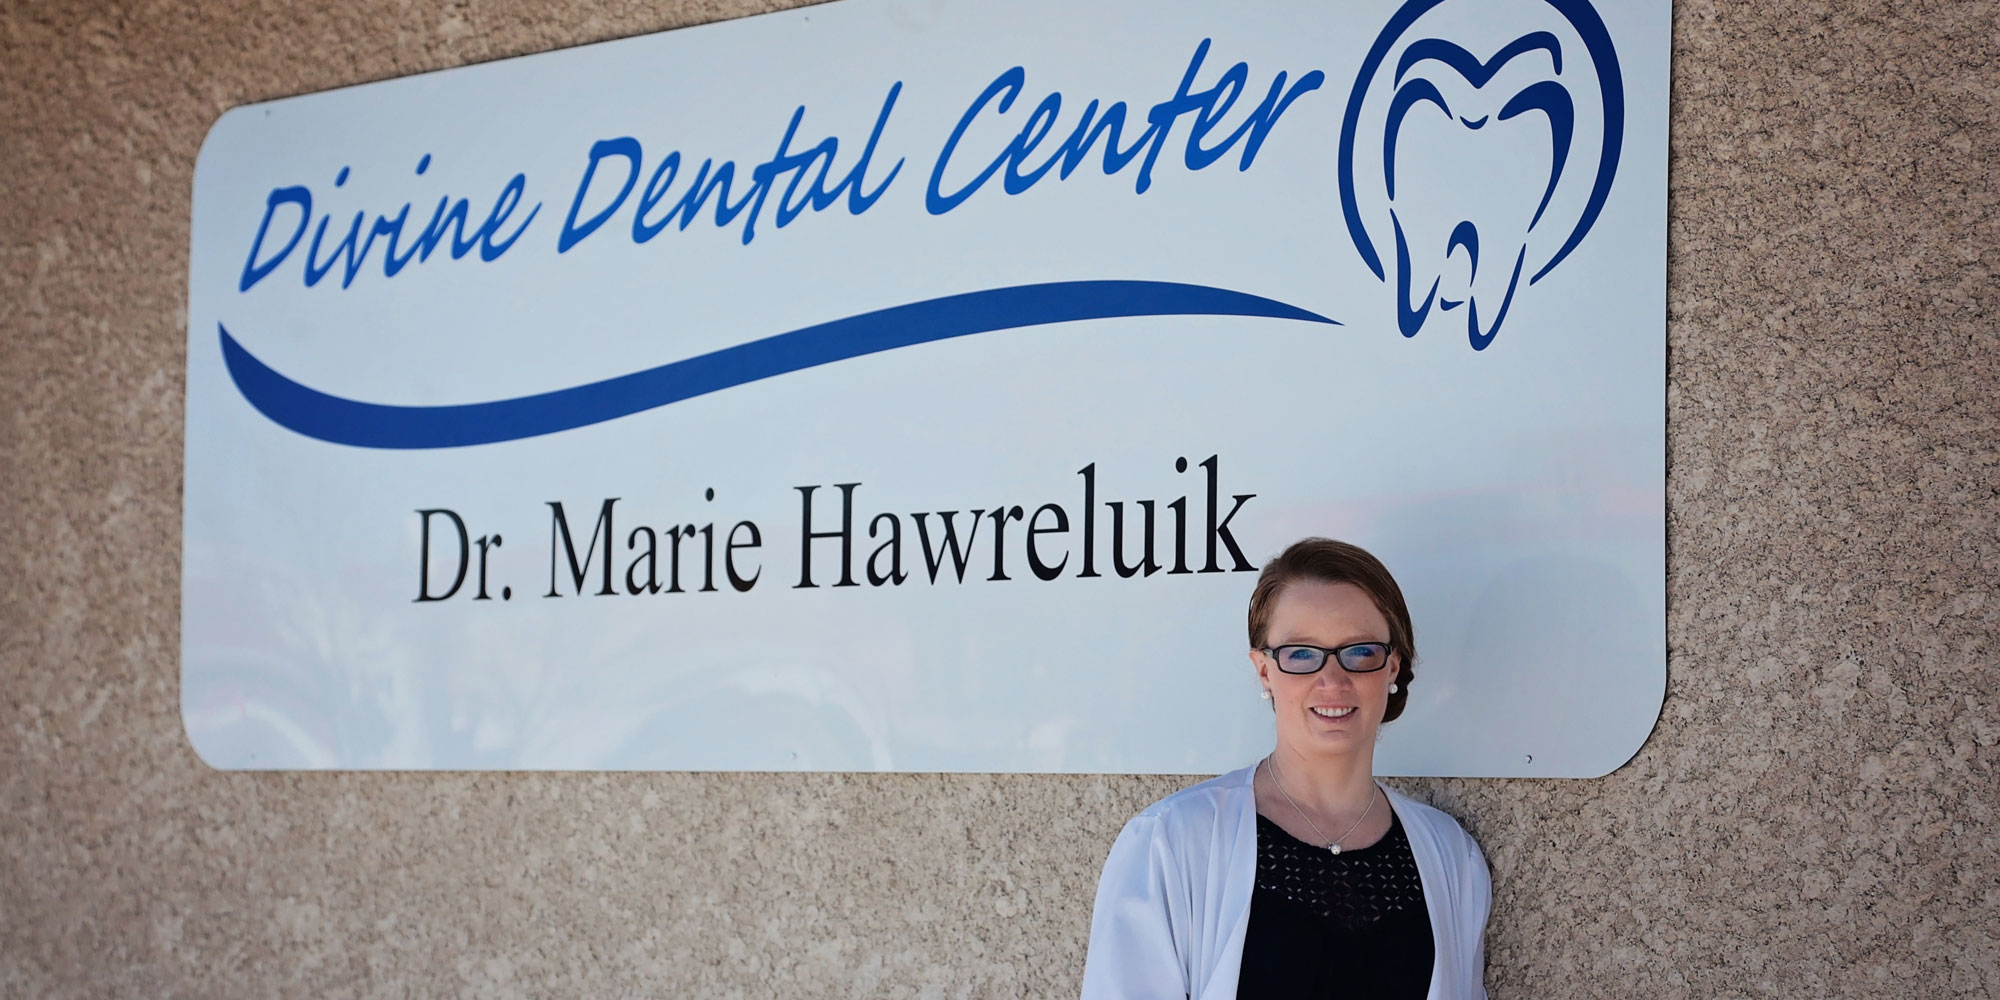 Dentist Dr. Hawreluik in Yorkton, SK Divine Dental Center